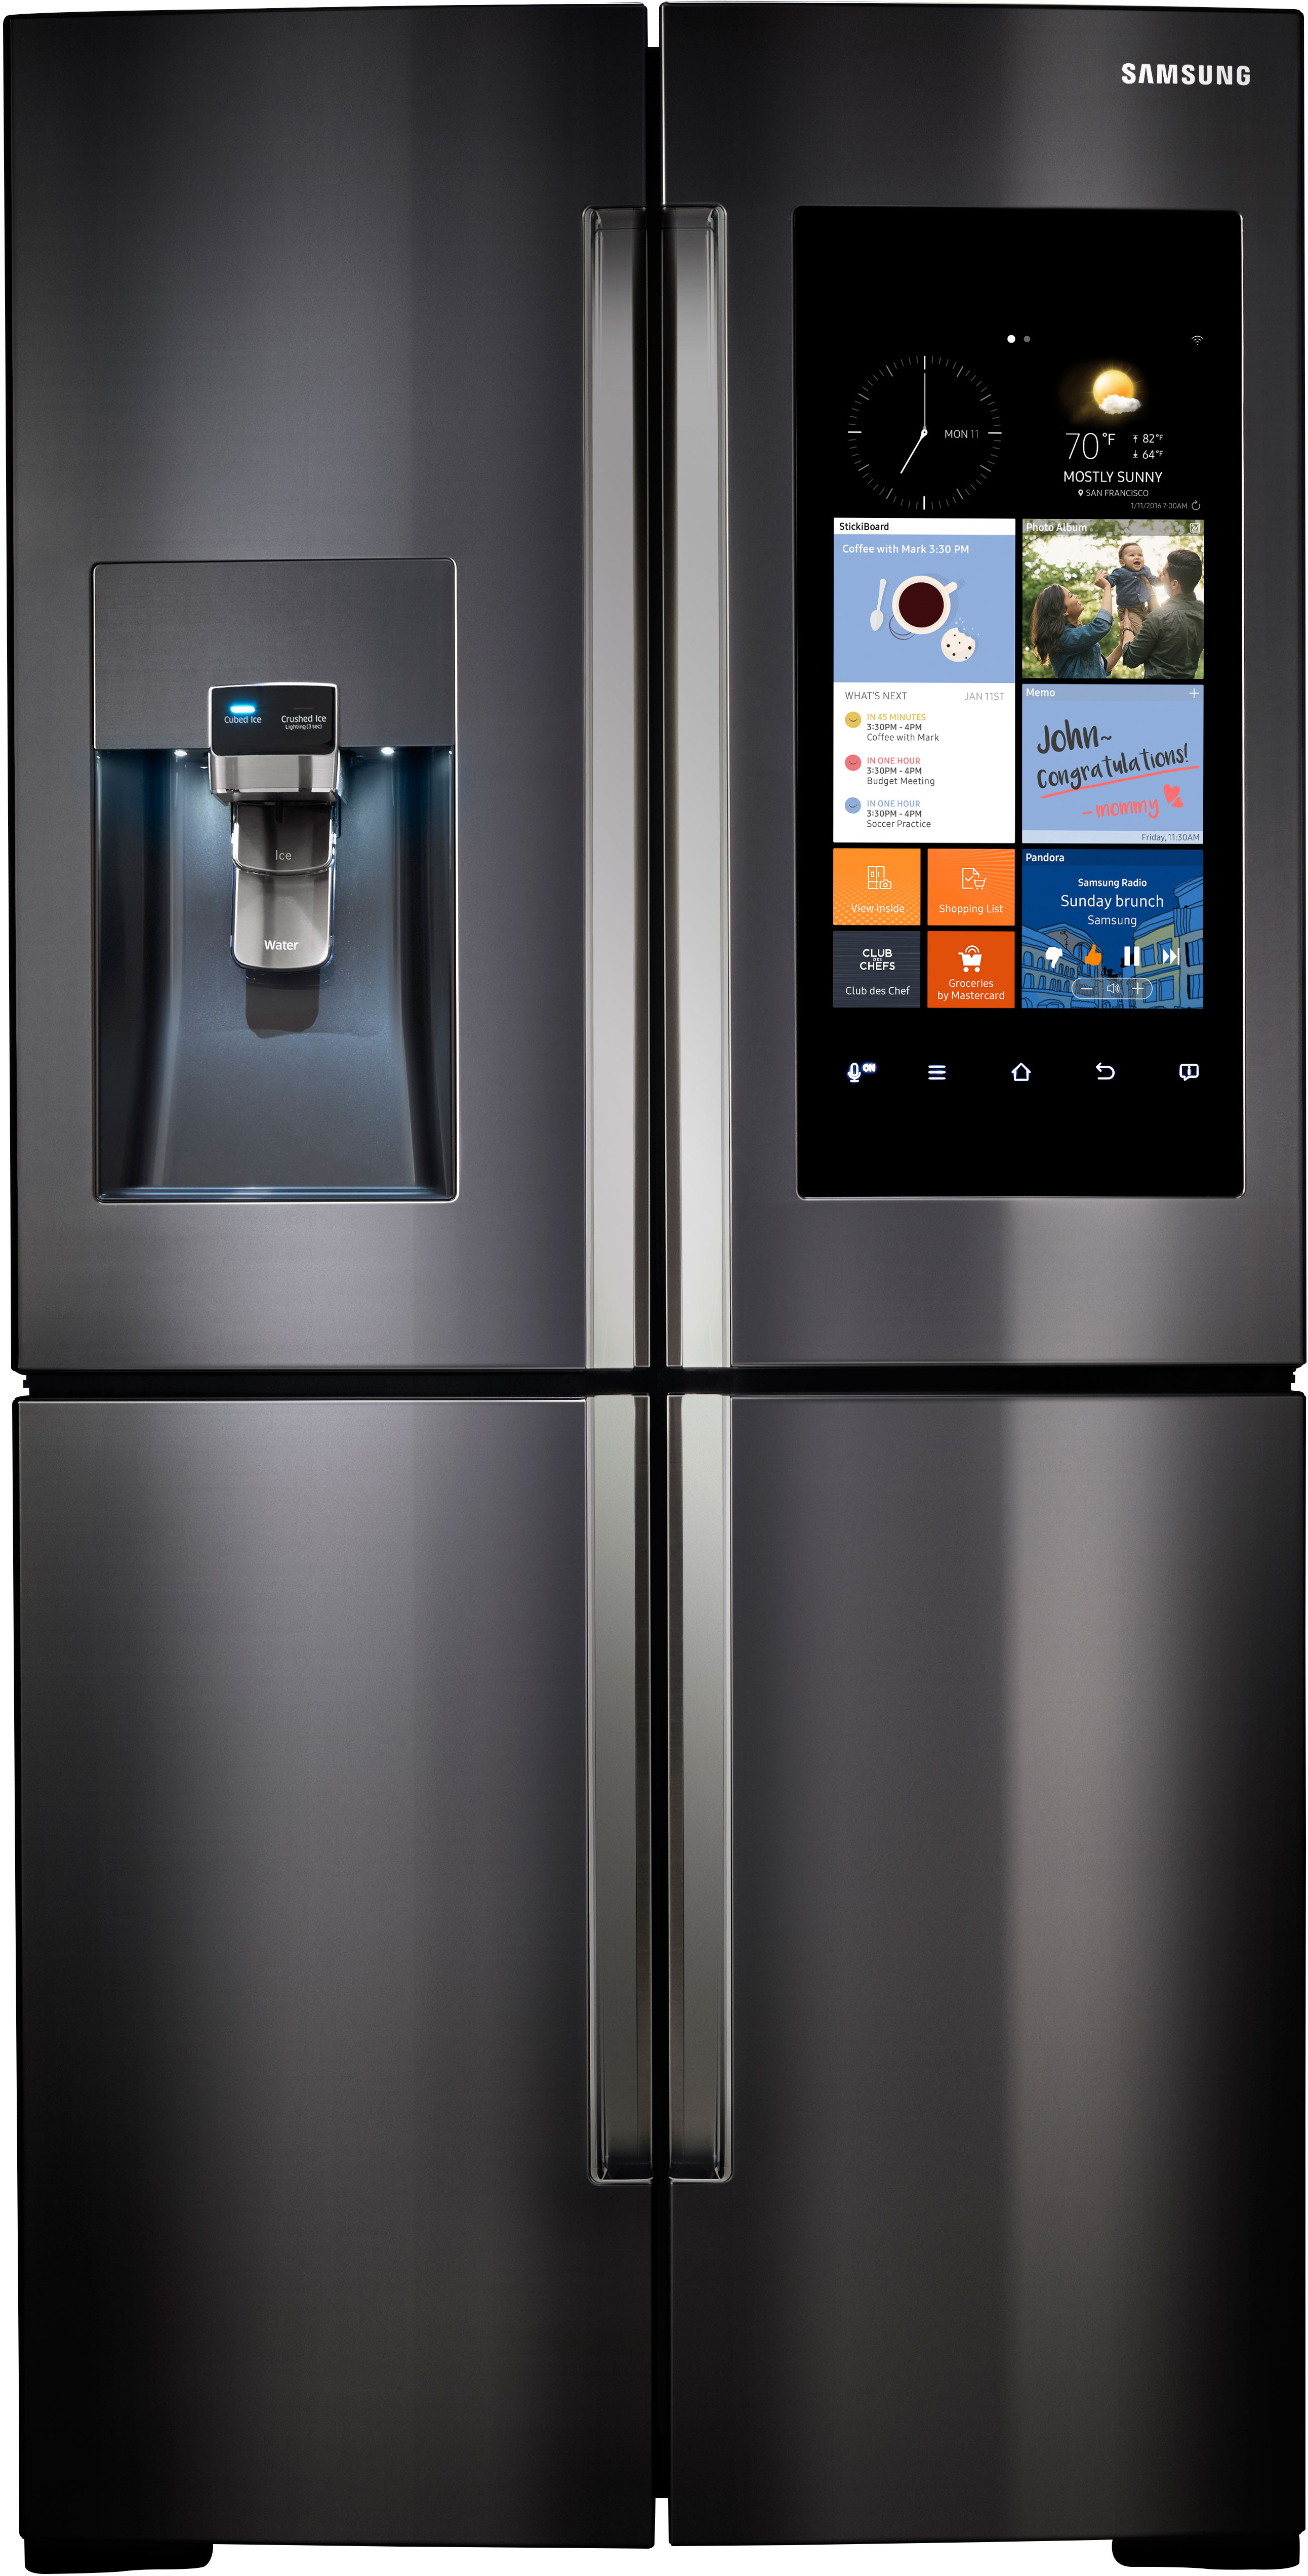 Samsung RF22K9581SG 36 Inch Counter Depth 4 Door Refrigerator With Family  Hub WiFi LCD Touchscreen, Built In Cameras, 22.1 Cu. Ft.